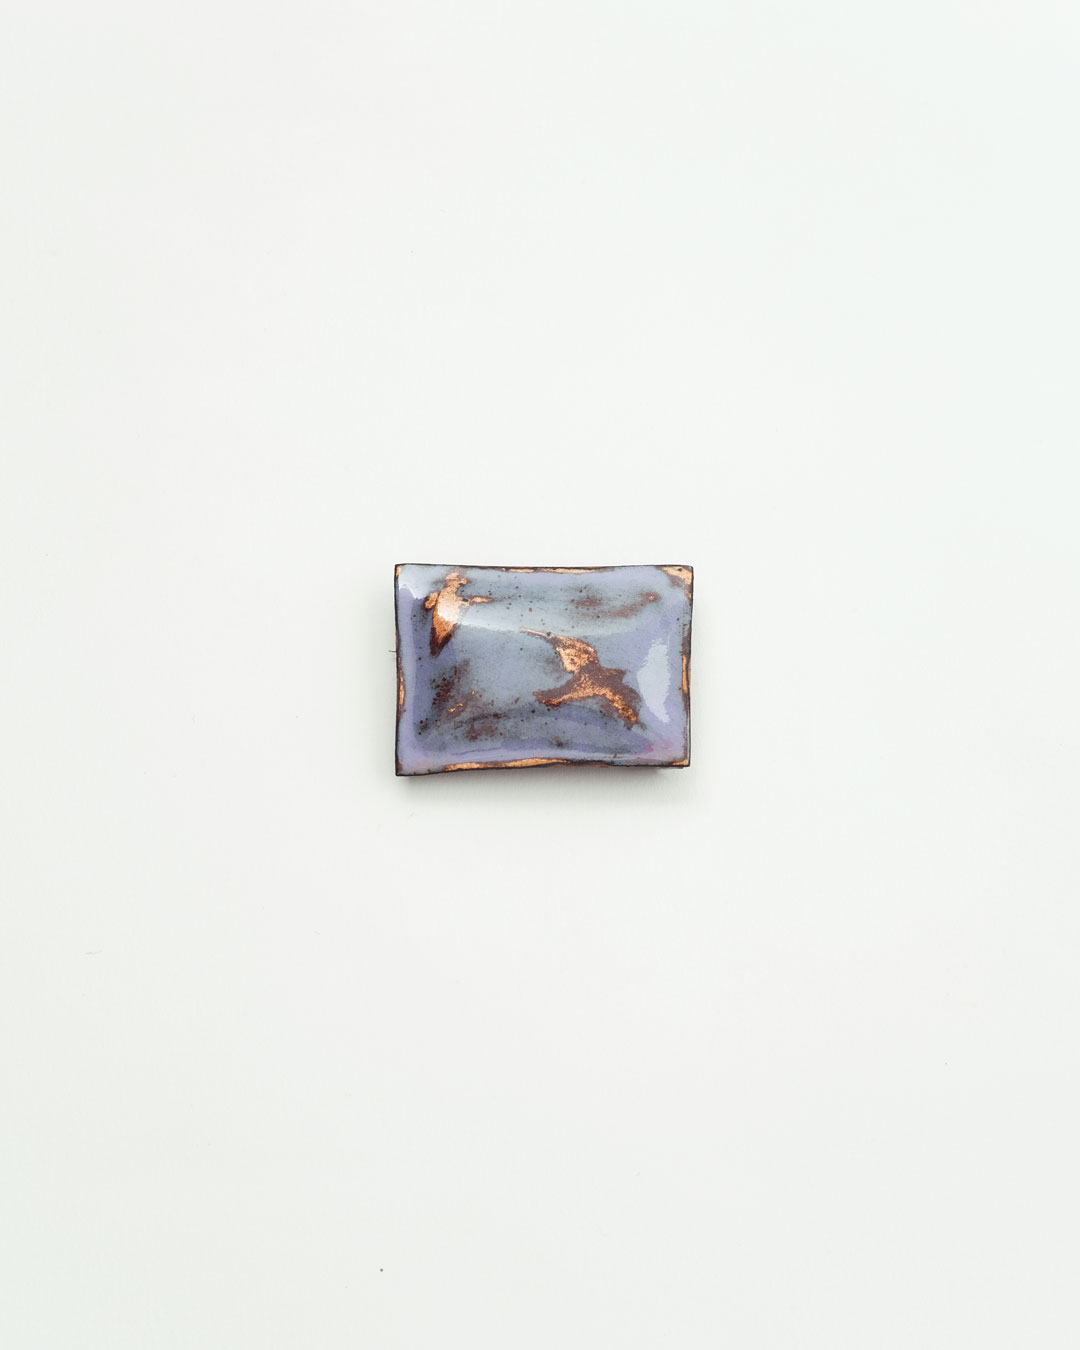 Nicole Beck, Little Bird, 2019, brooch; copper, enamel, silver, 50 x 35 x 10 mm, €540